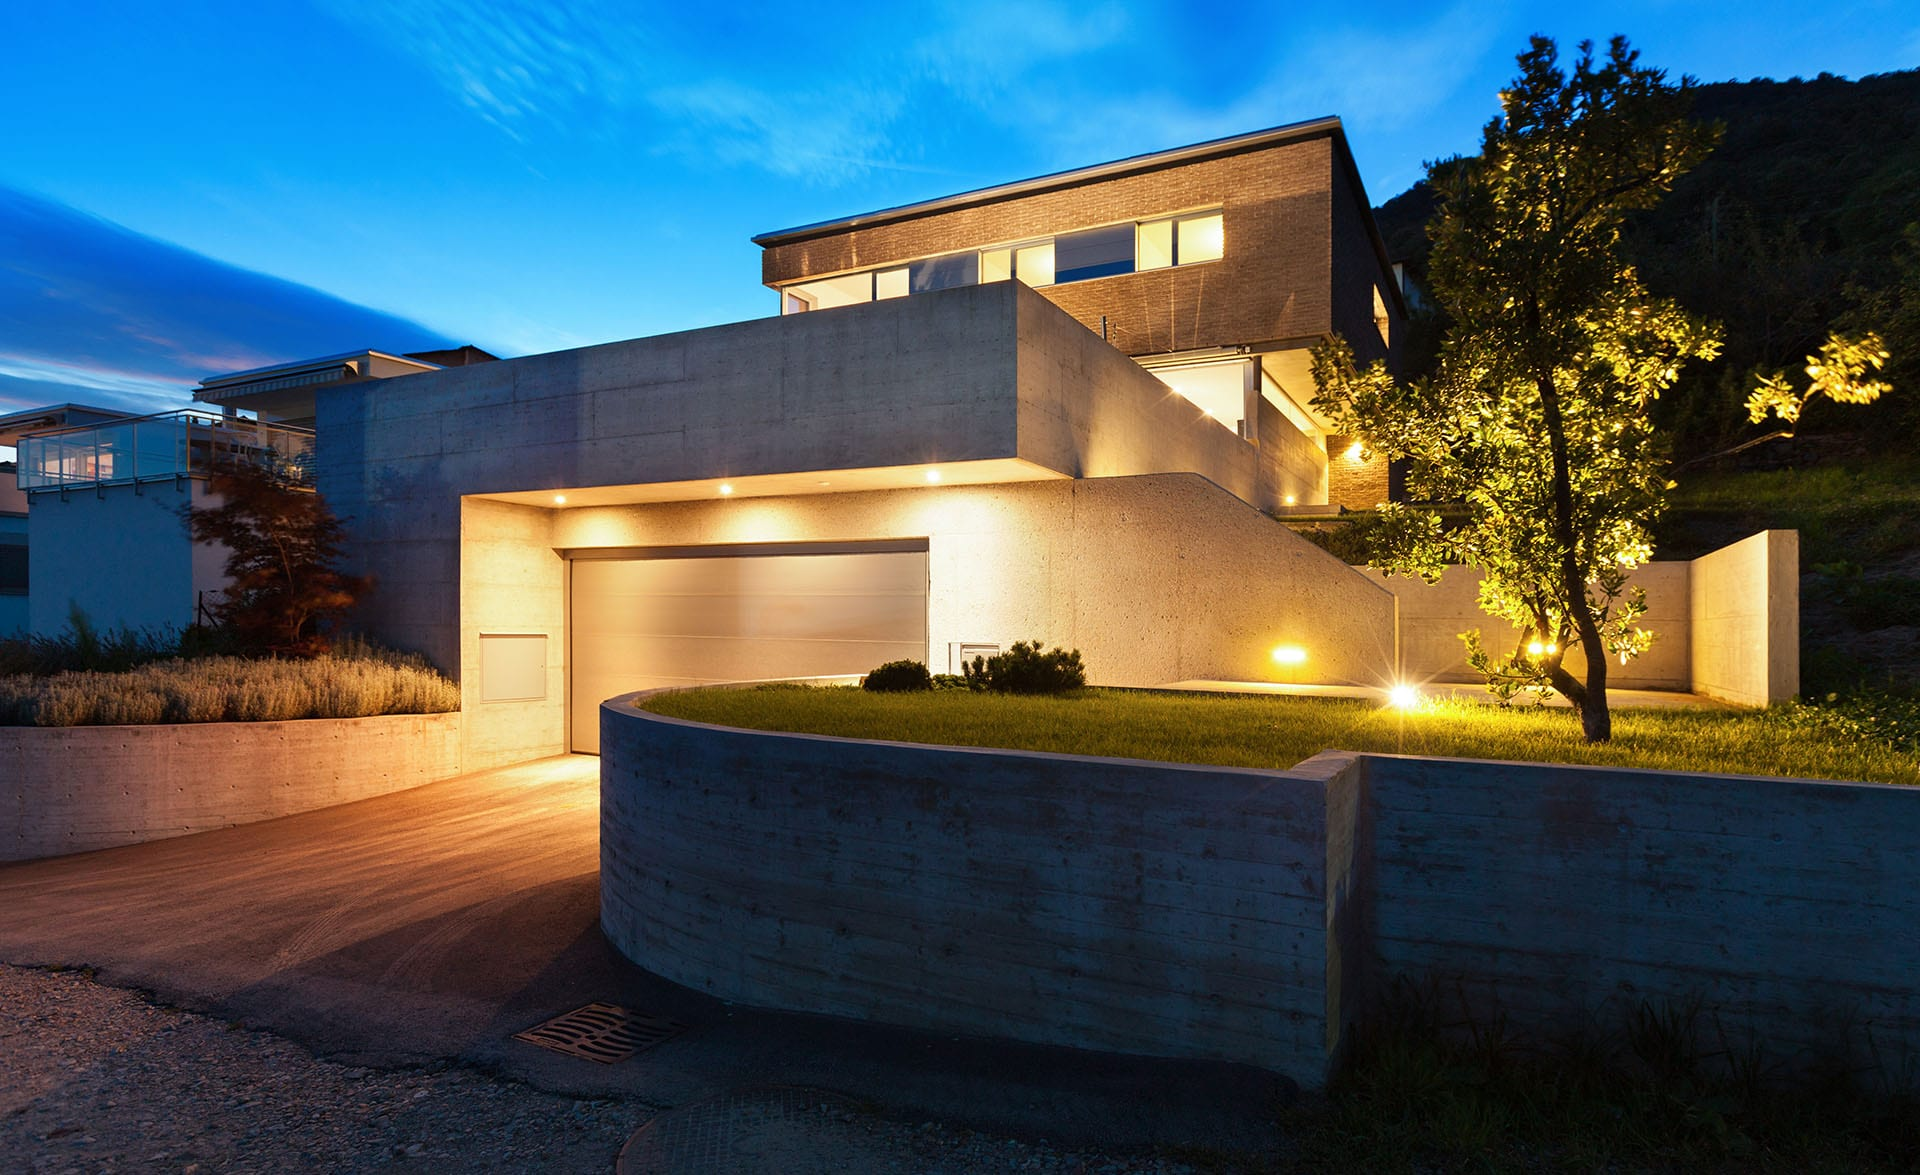 Best Techniques For Lighting The Exterior Of A Home